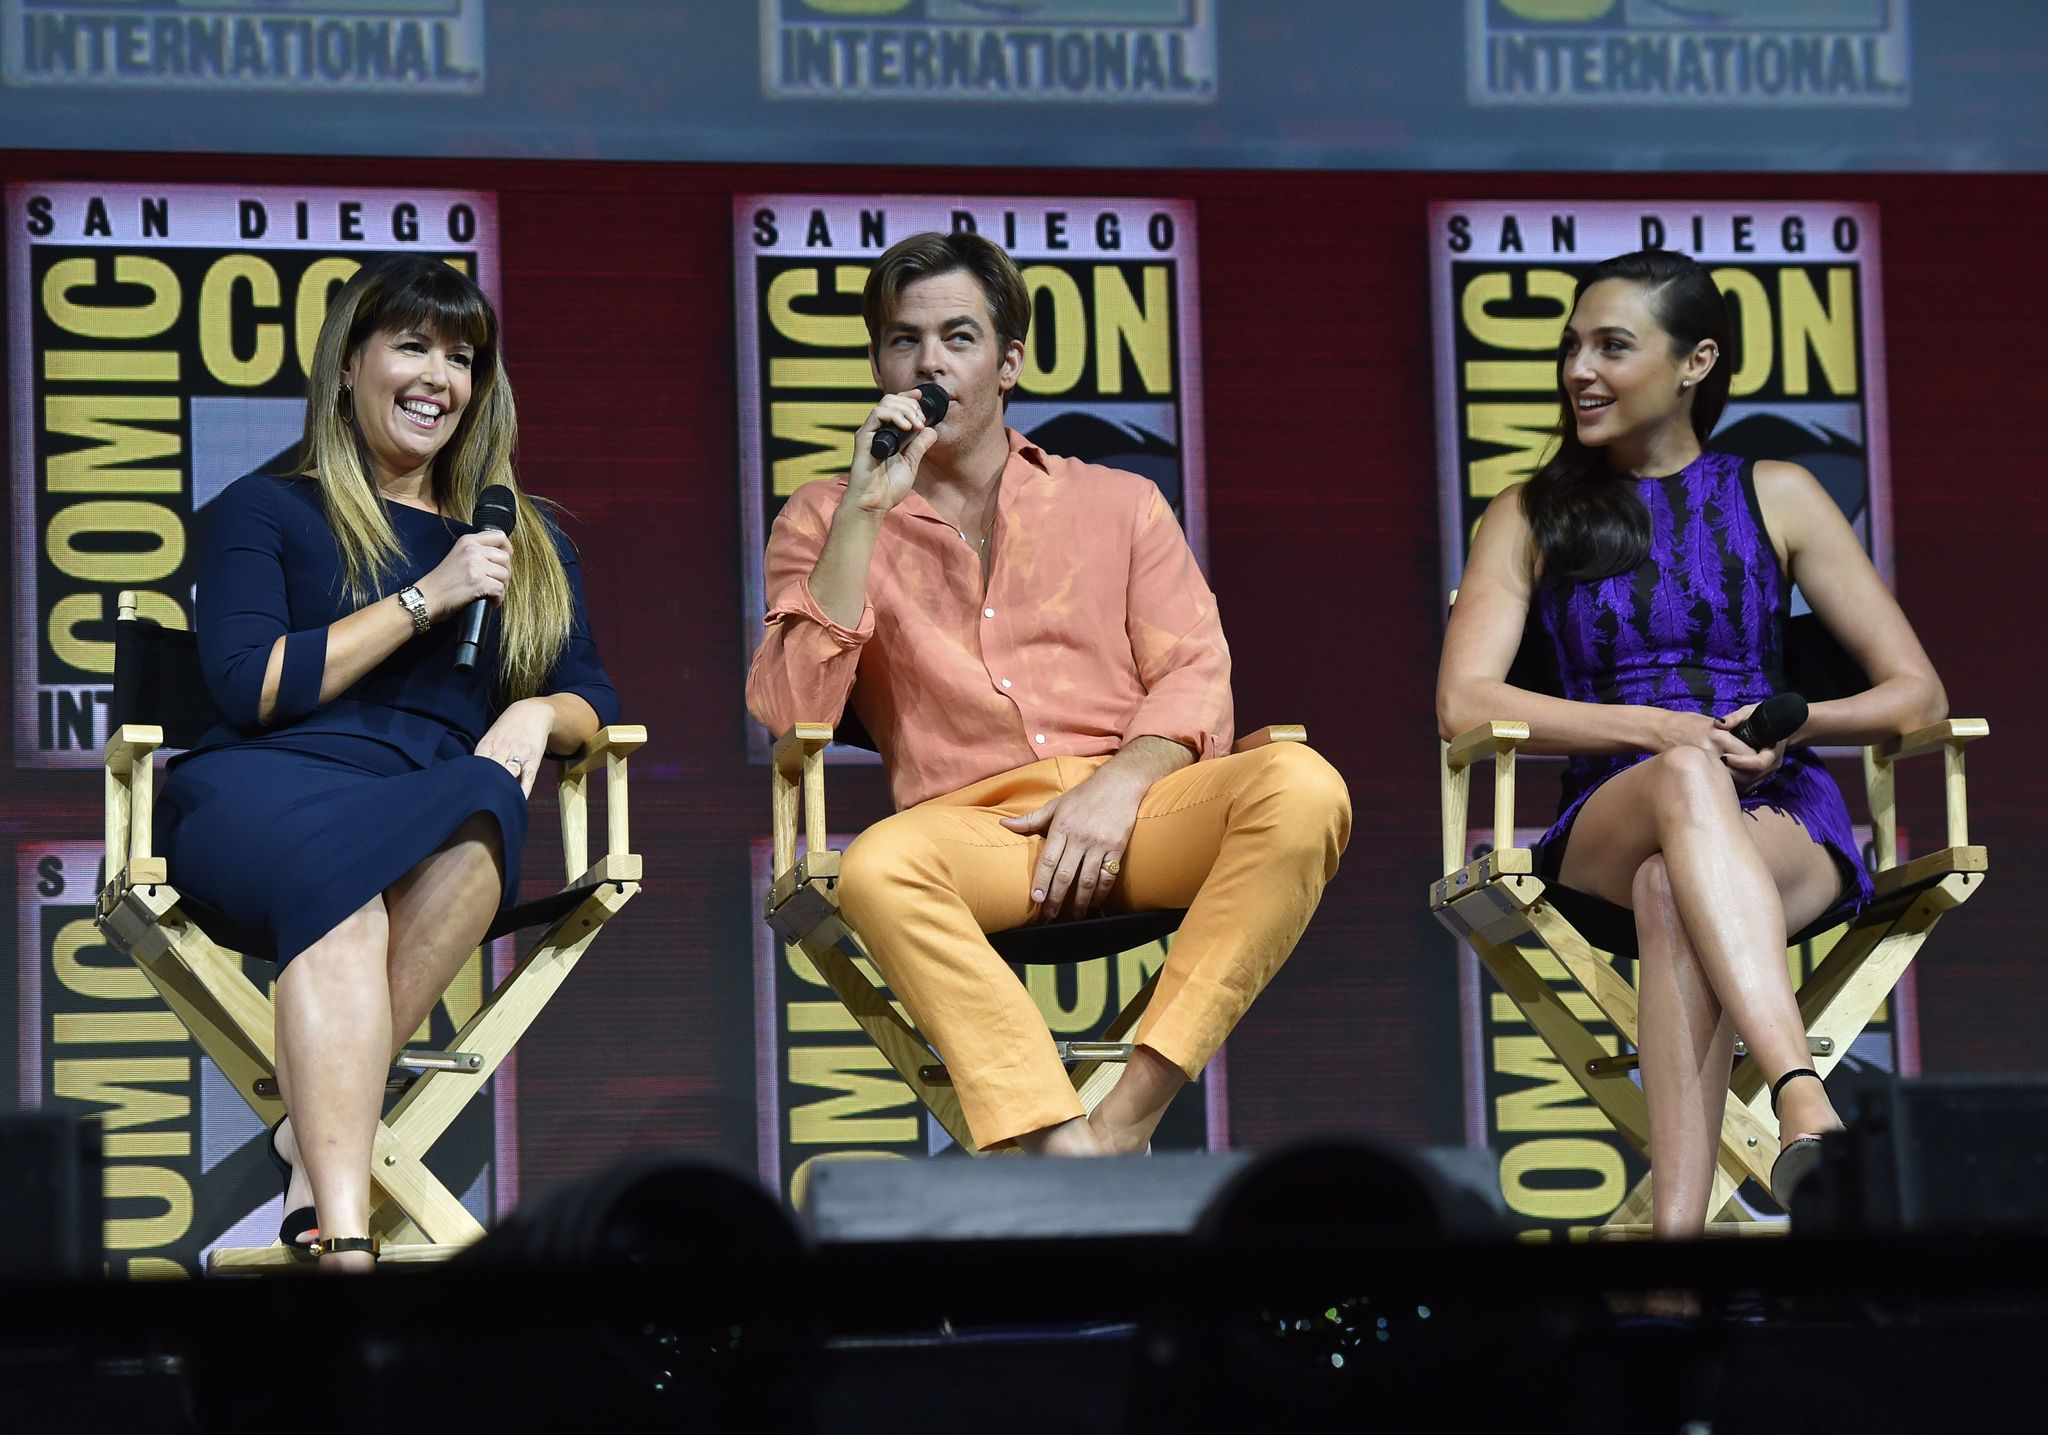 Patty Jenkins, Chris Pine, and Gal Gadot at an event for Wonder Woman 1984 (2020)